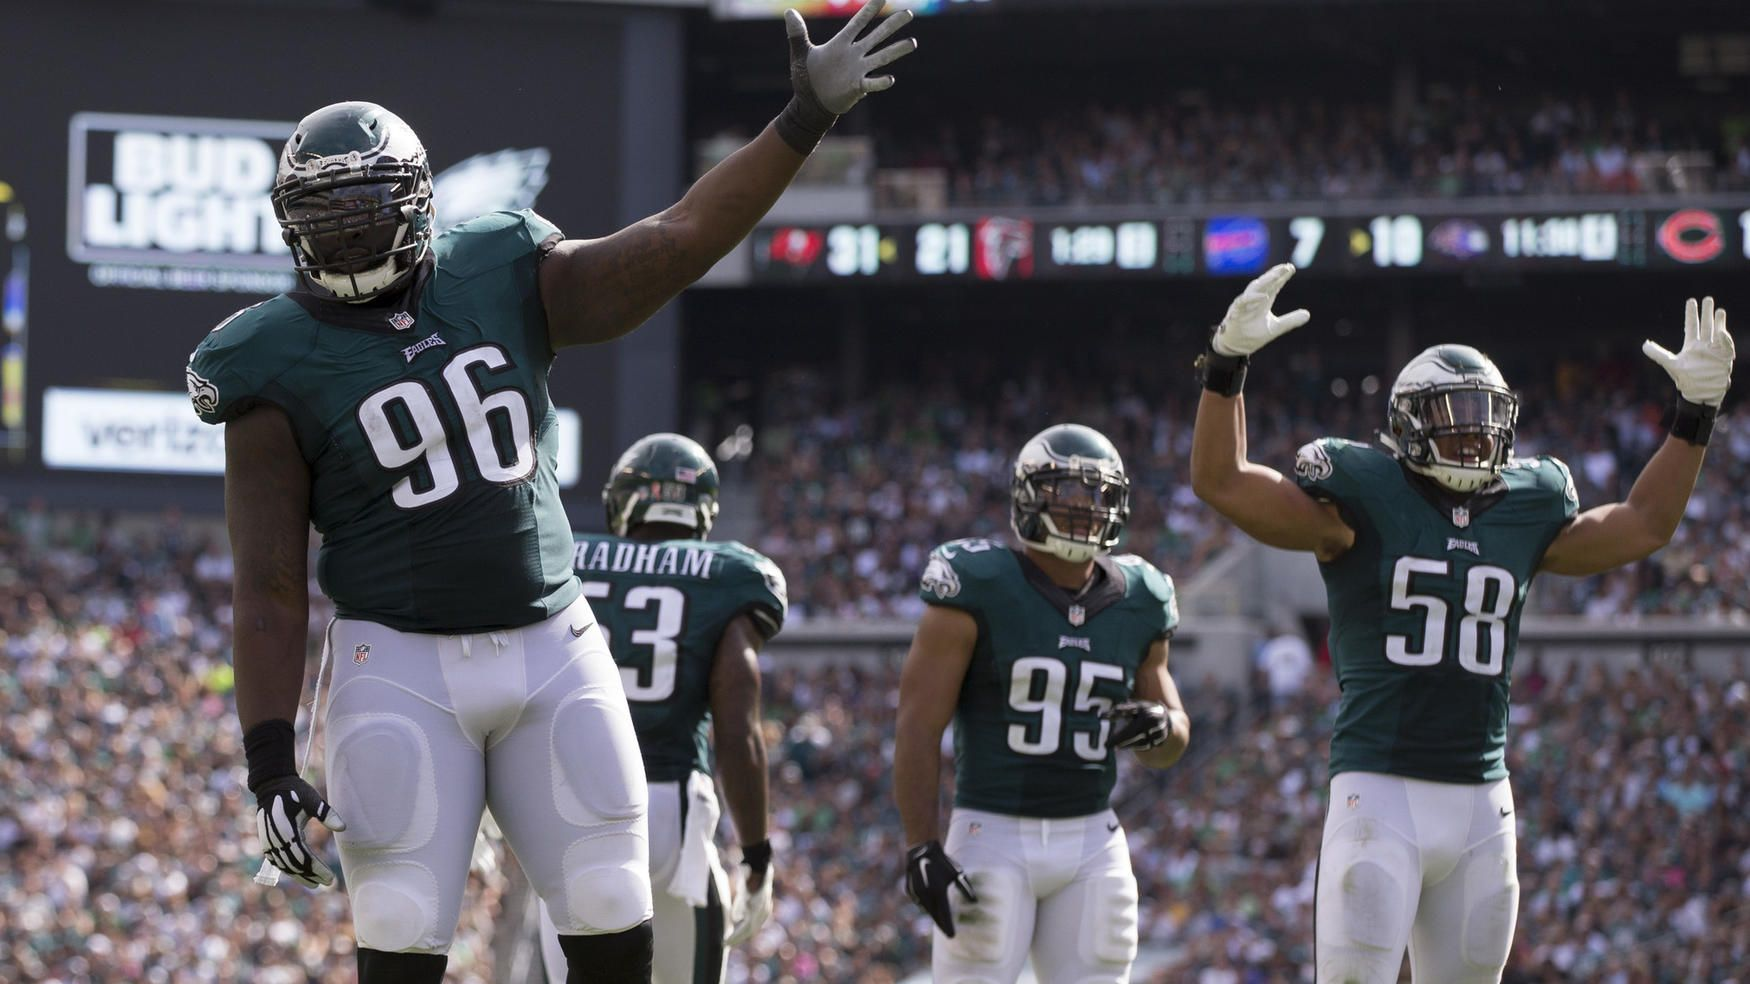 7045c3739 Bennie Logan  96 and Jordan Hicks  58 of the Philadelphia Eagles ask the  crowd to get loud in the fourth quarter against the Cleveland Browns at  Lincoln ...